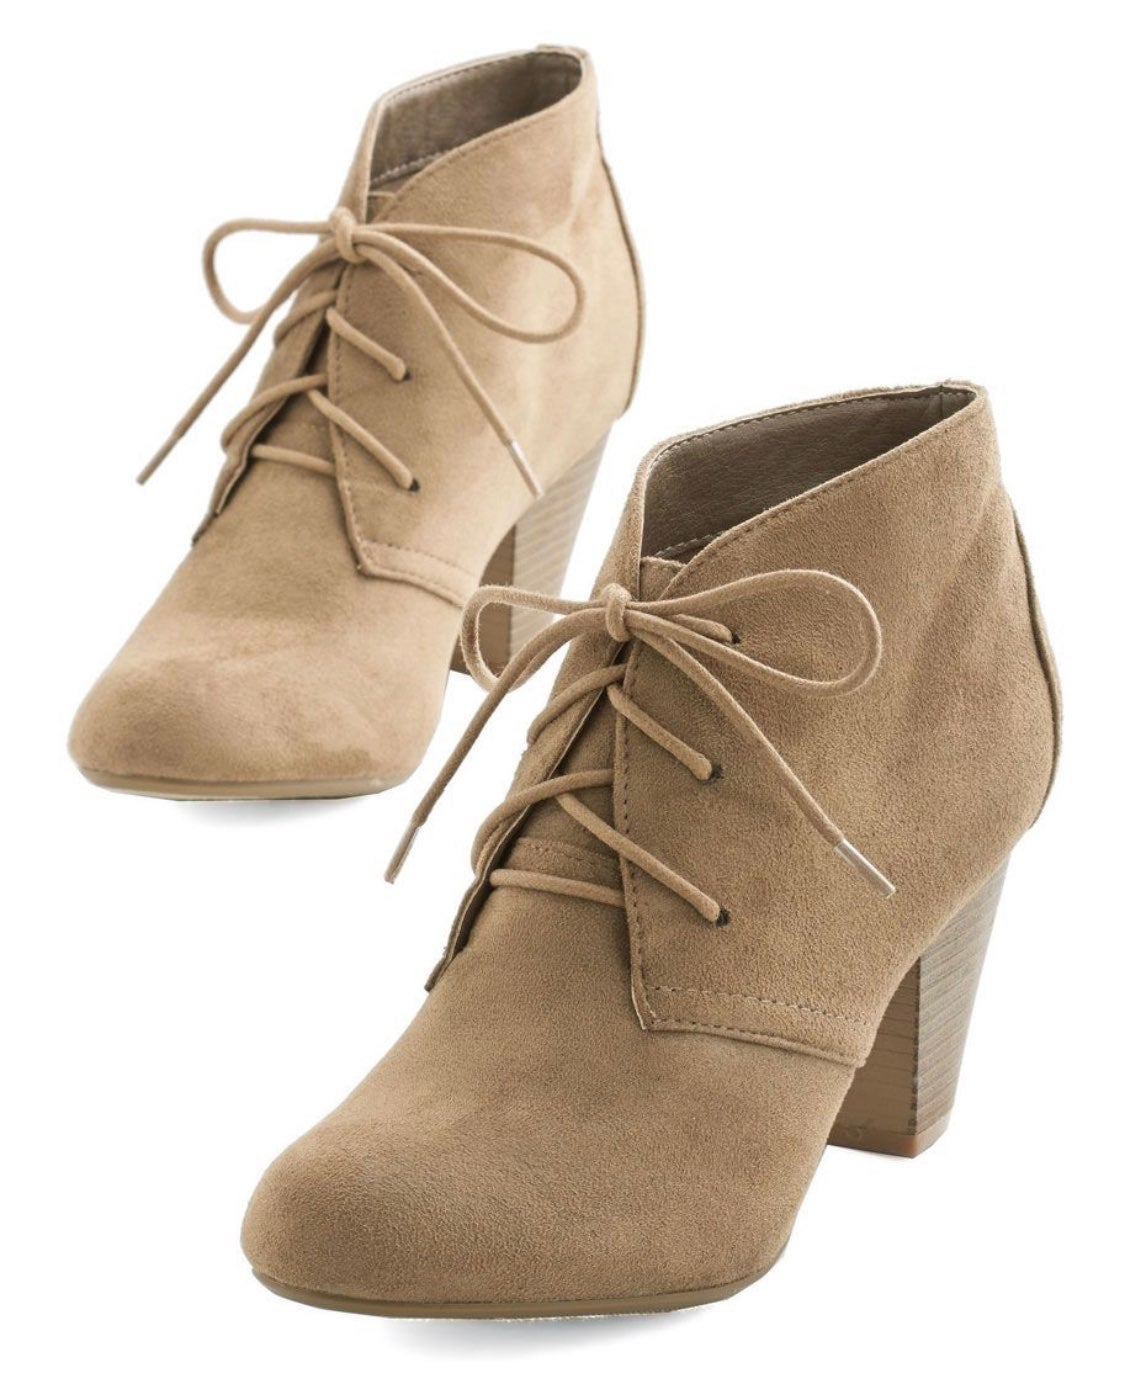 Modcloth Faux Suede Lace-Up Booties 6